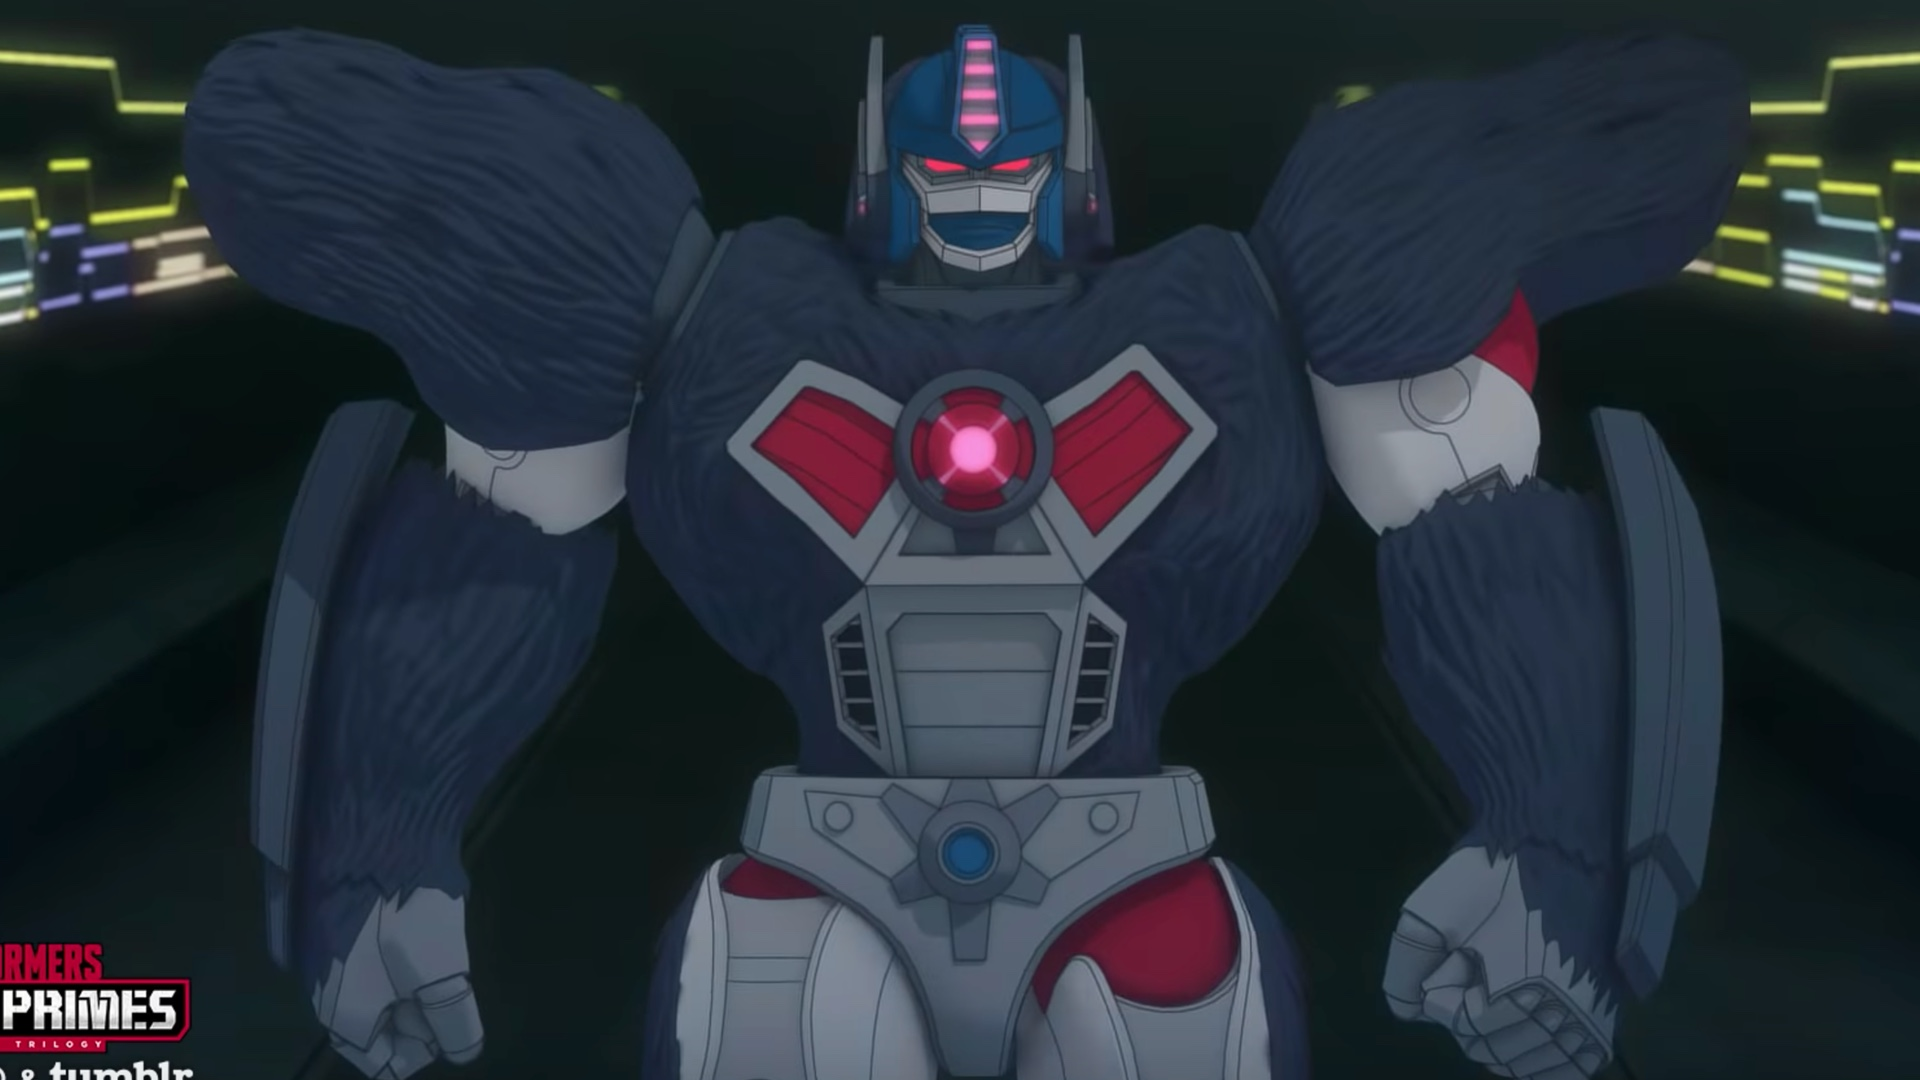 transformers-power-of-the-primes-gets-an-awesome-new-trailer-social.jpg